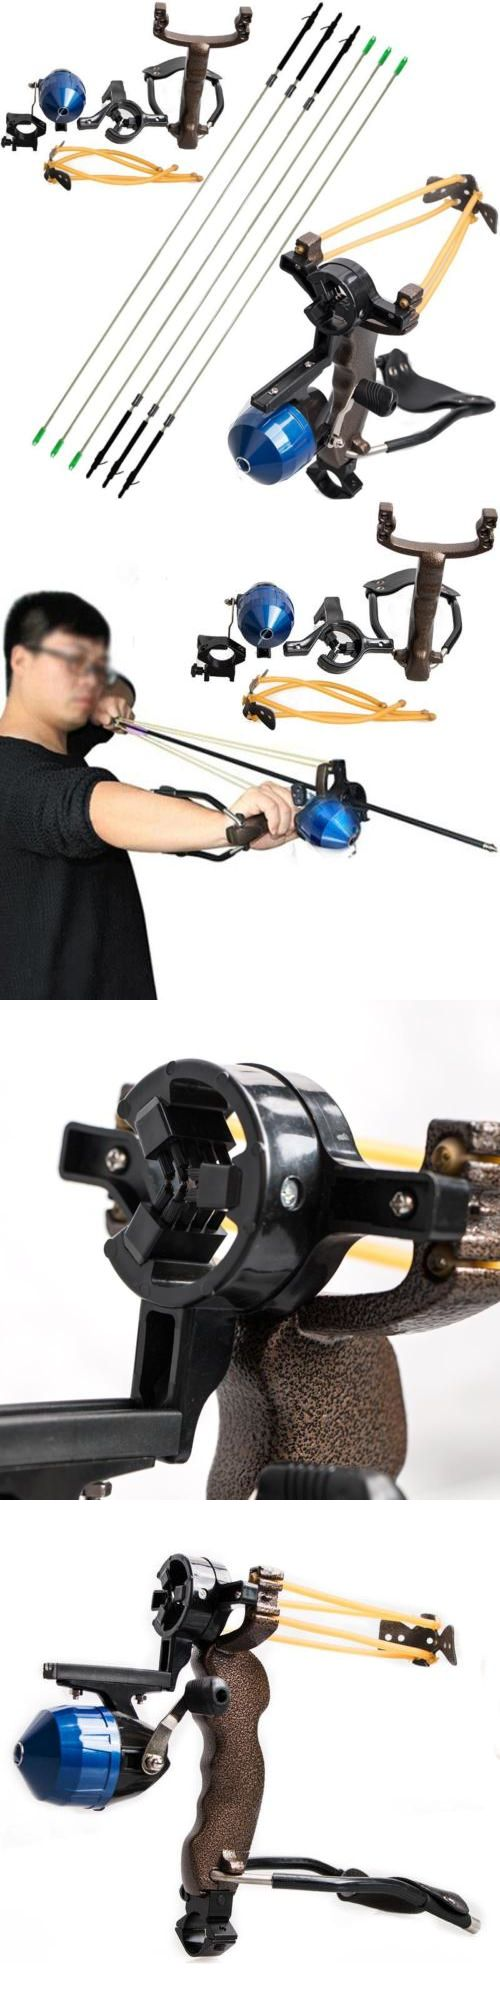 Slingshots 117141: Fishing Reel Slingshot Archery Slingbow Hunting Catapult Shooting Carbon Arrows -> BUY IT NOW ONLY: $65.51 on eBay!